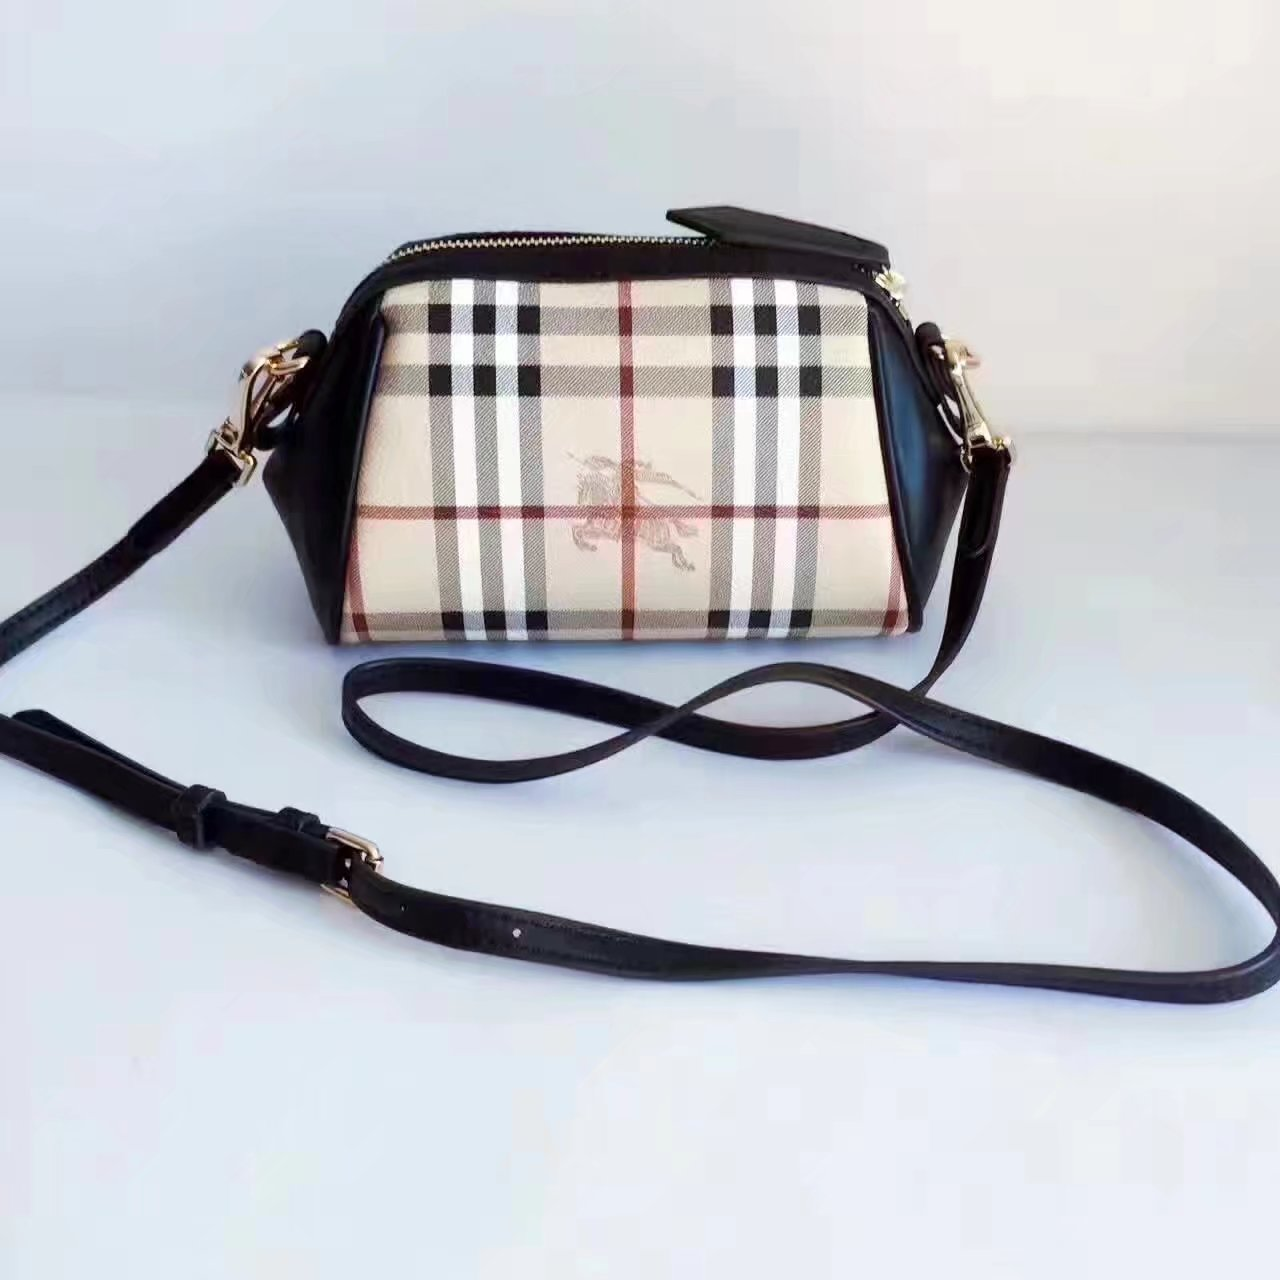 Burberry House Check and Leather Mini Women Shoulder Bag Black